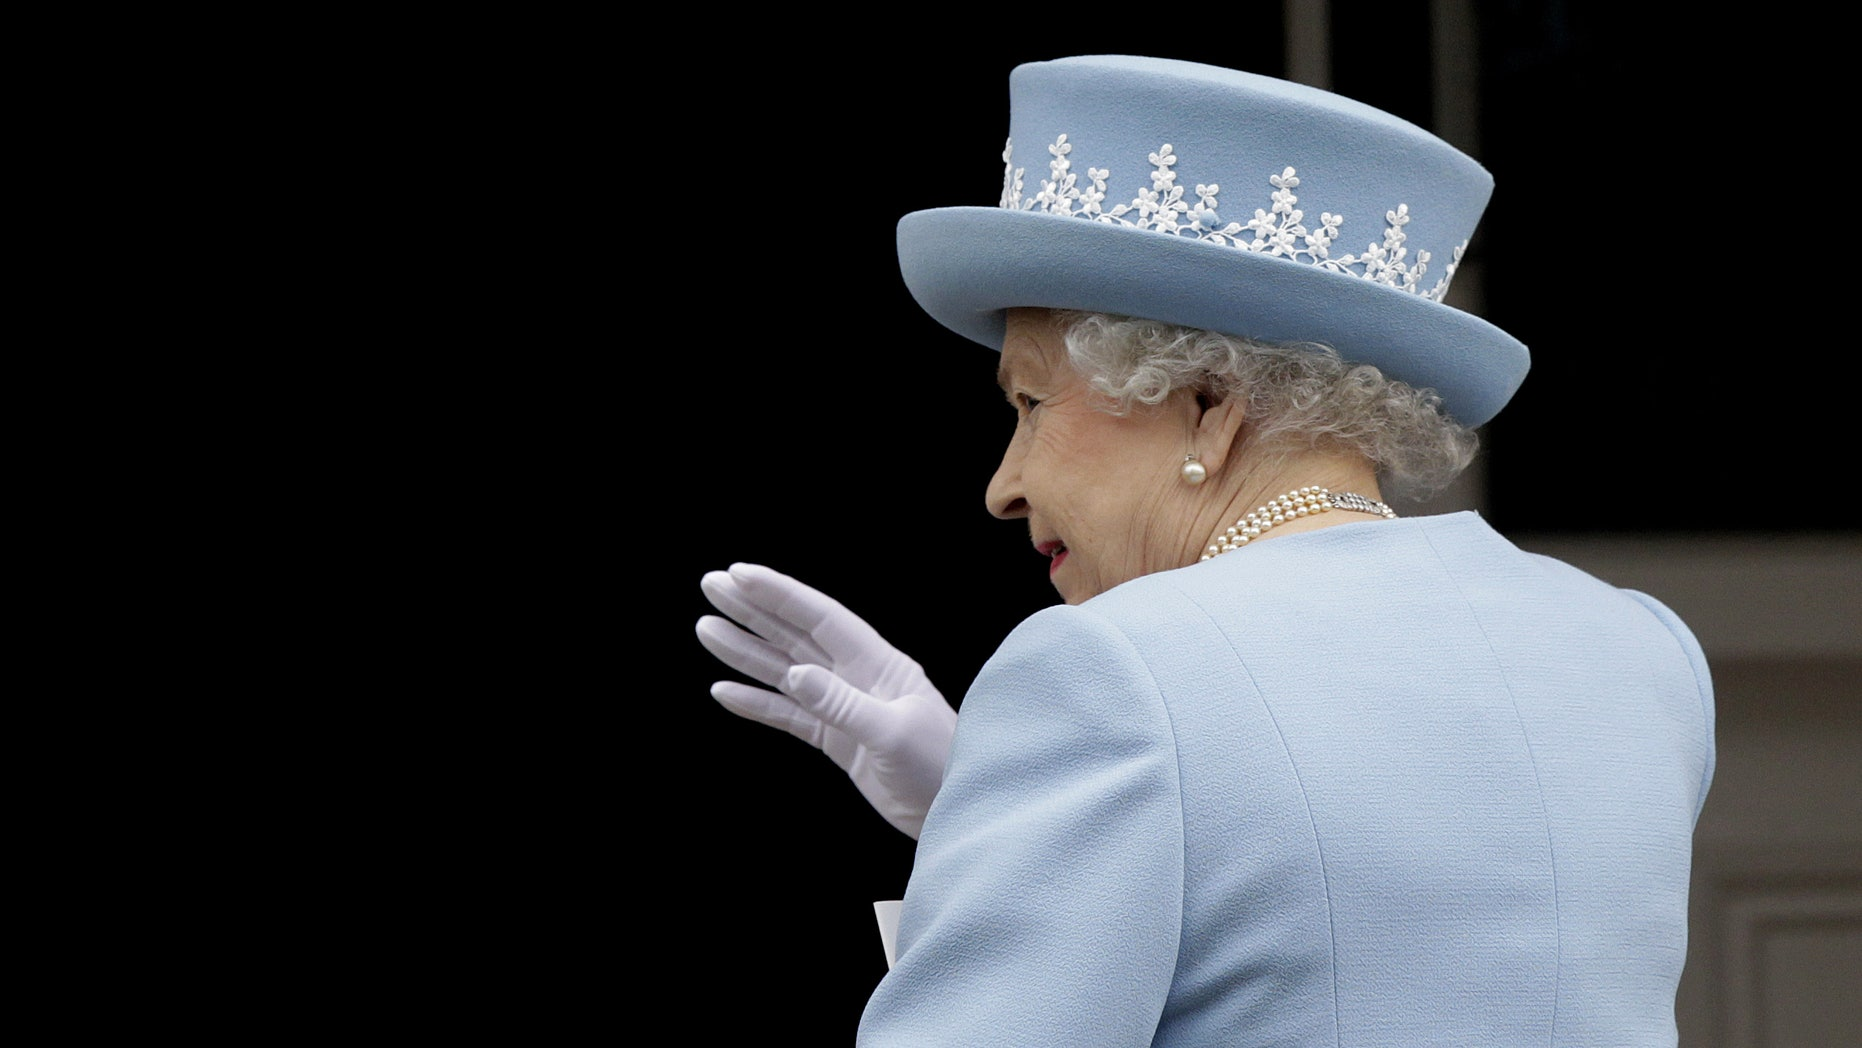 June 26, 2012: Britain's Queen Elizabeth II waves to the public as she arrives for a Service of Thanksgiving in Saint Macartin's Cathedral in Enniskillen, Northern Ireland.